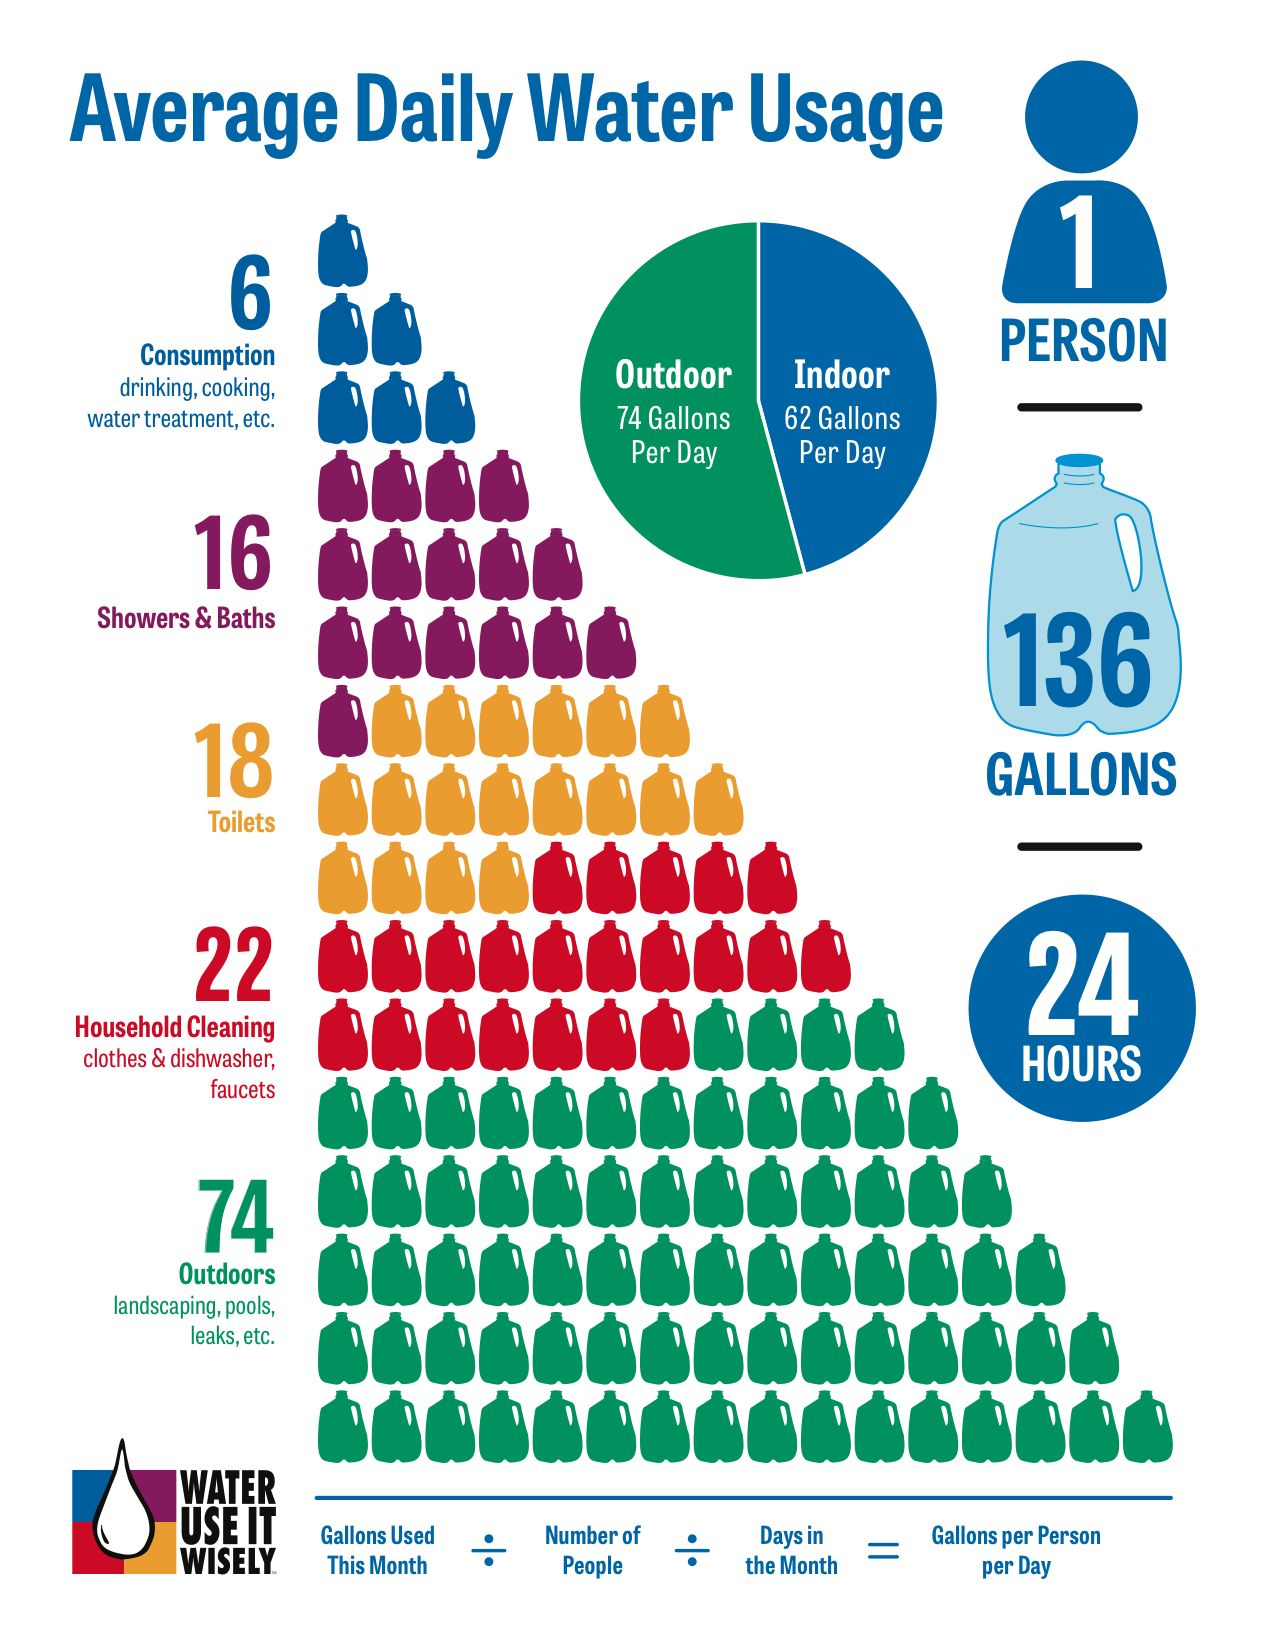 Environment - Using Water Wisely at Home